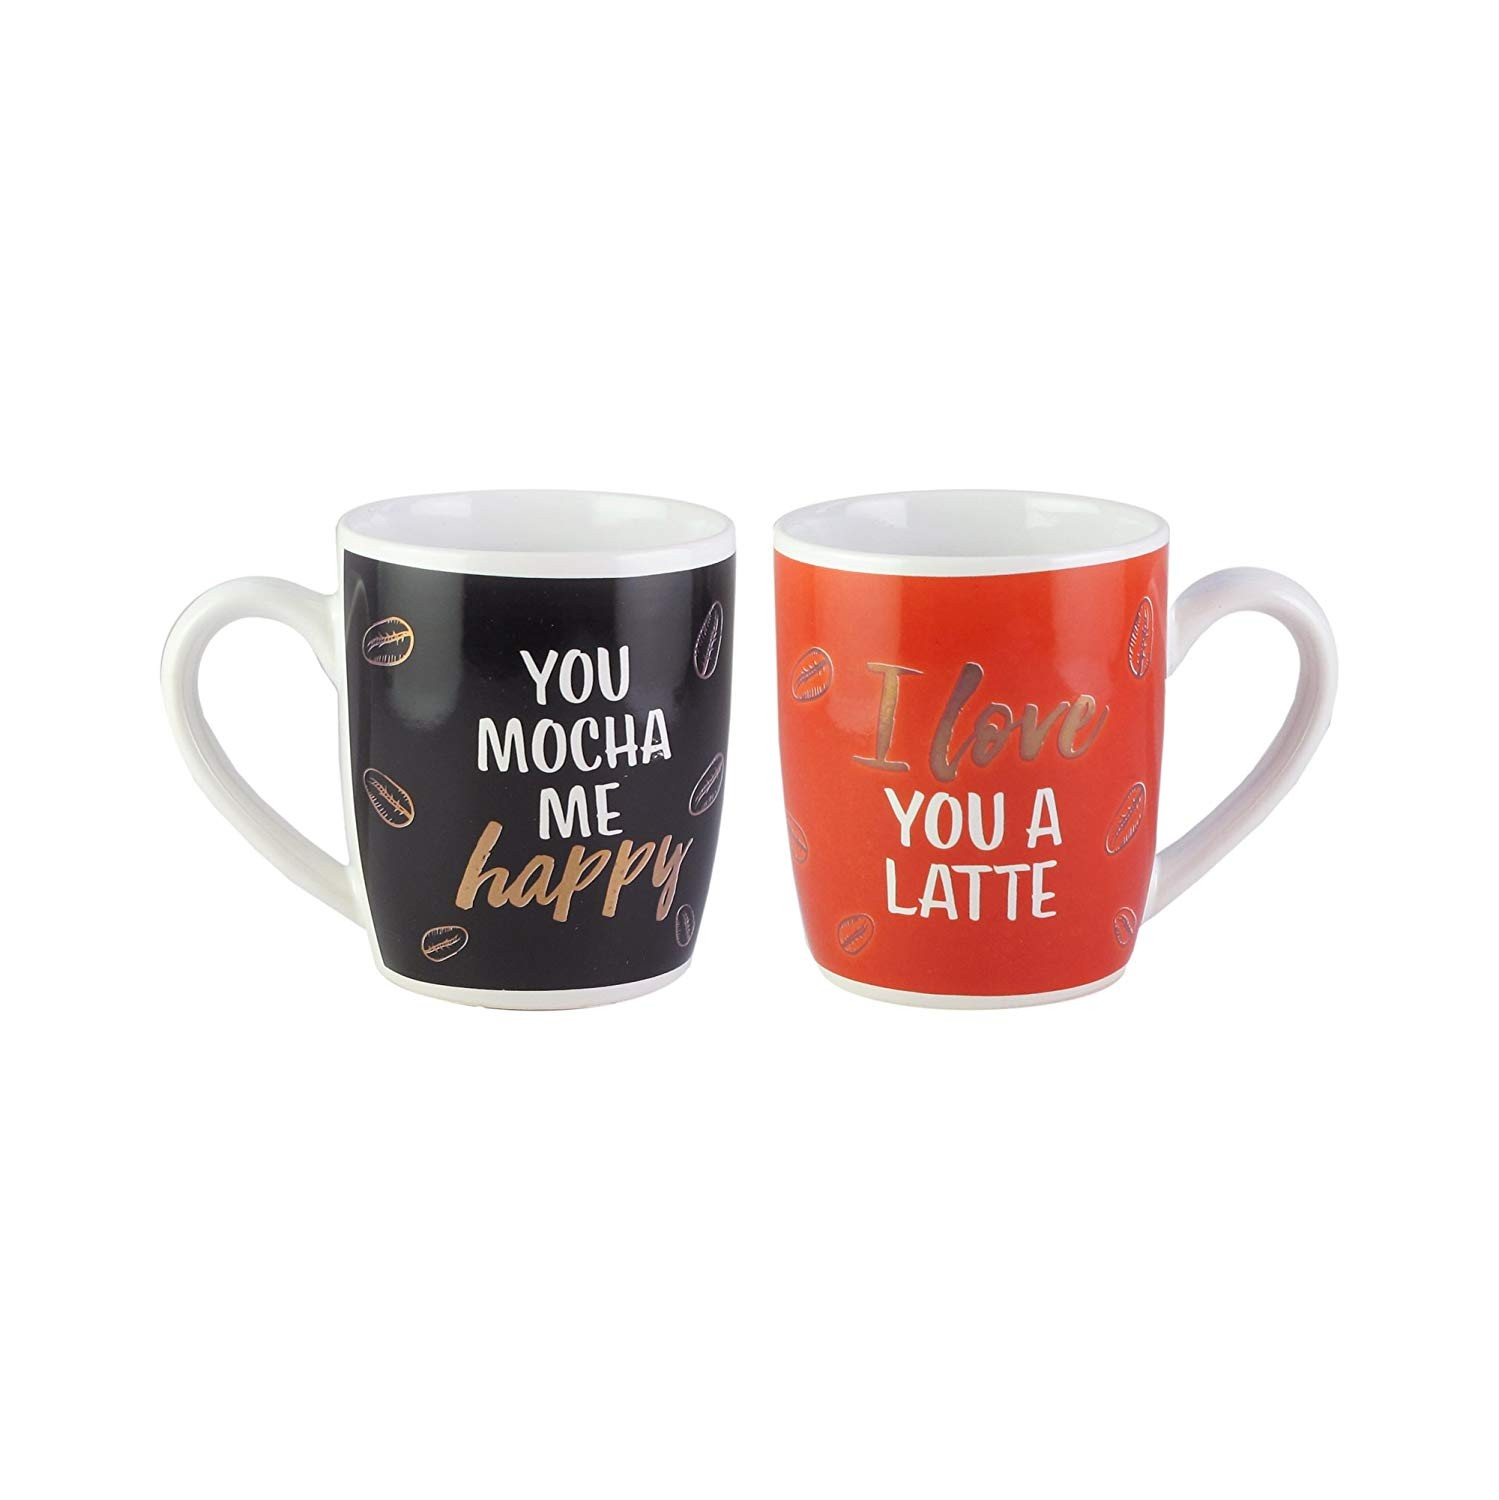 American Atelier 1562582-2M His/her Coffee Mug Set, 3.6 x 2.5 x 4, Red/Black